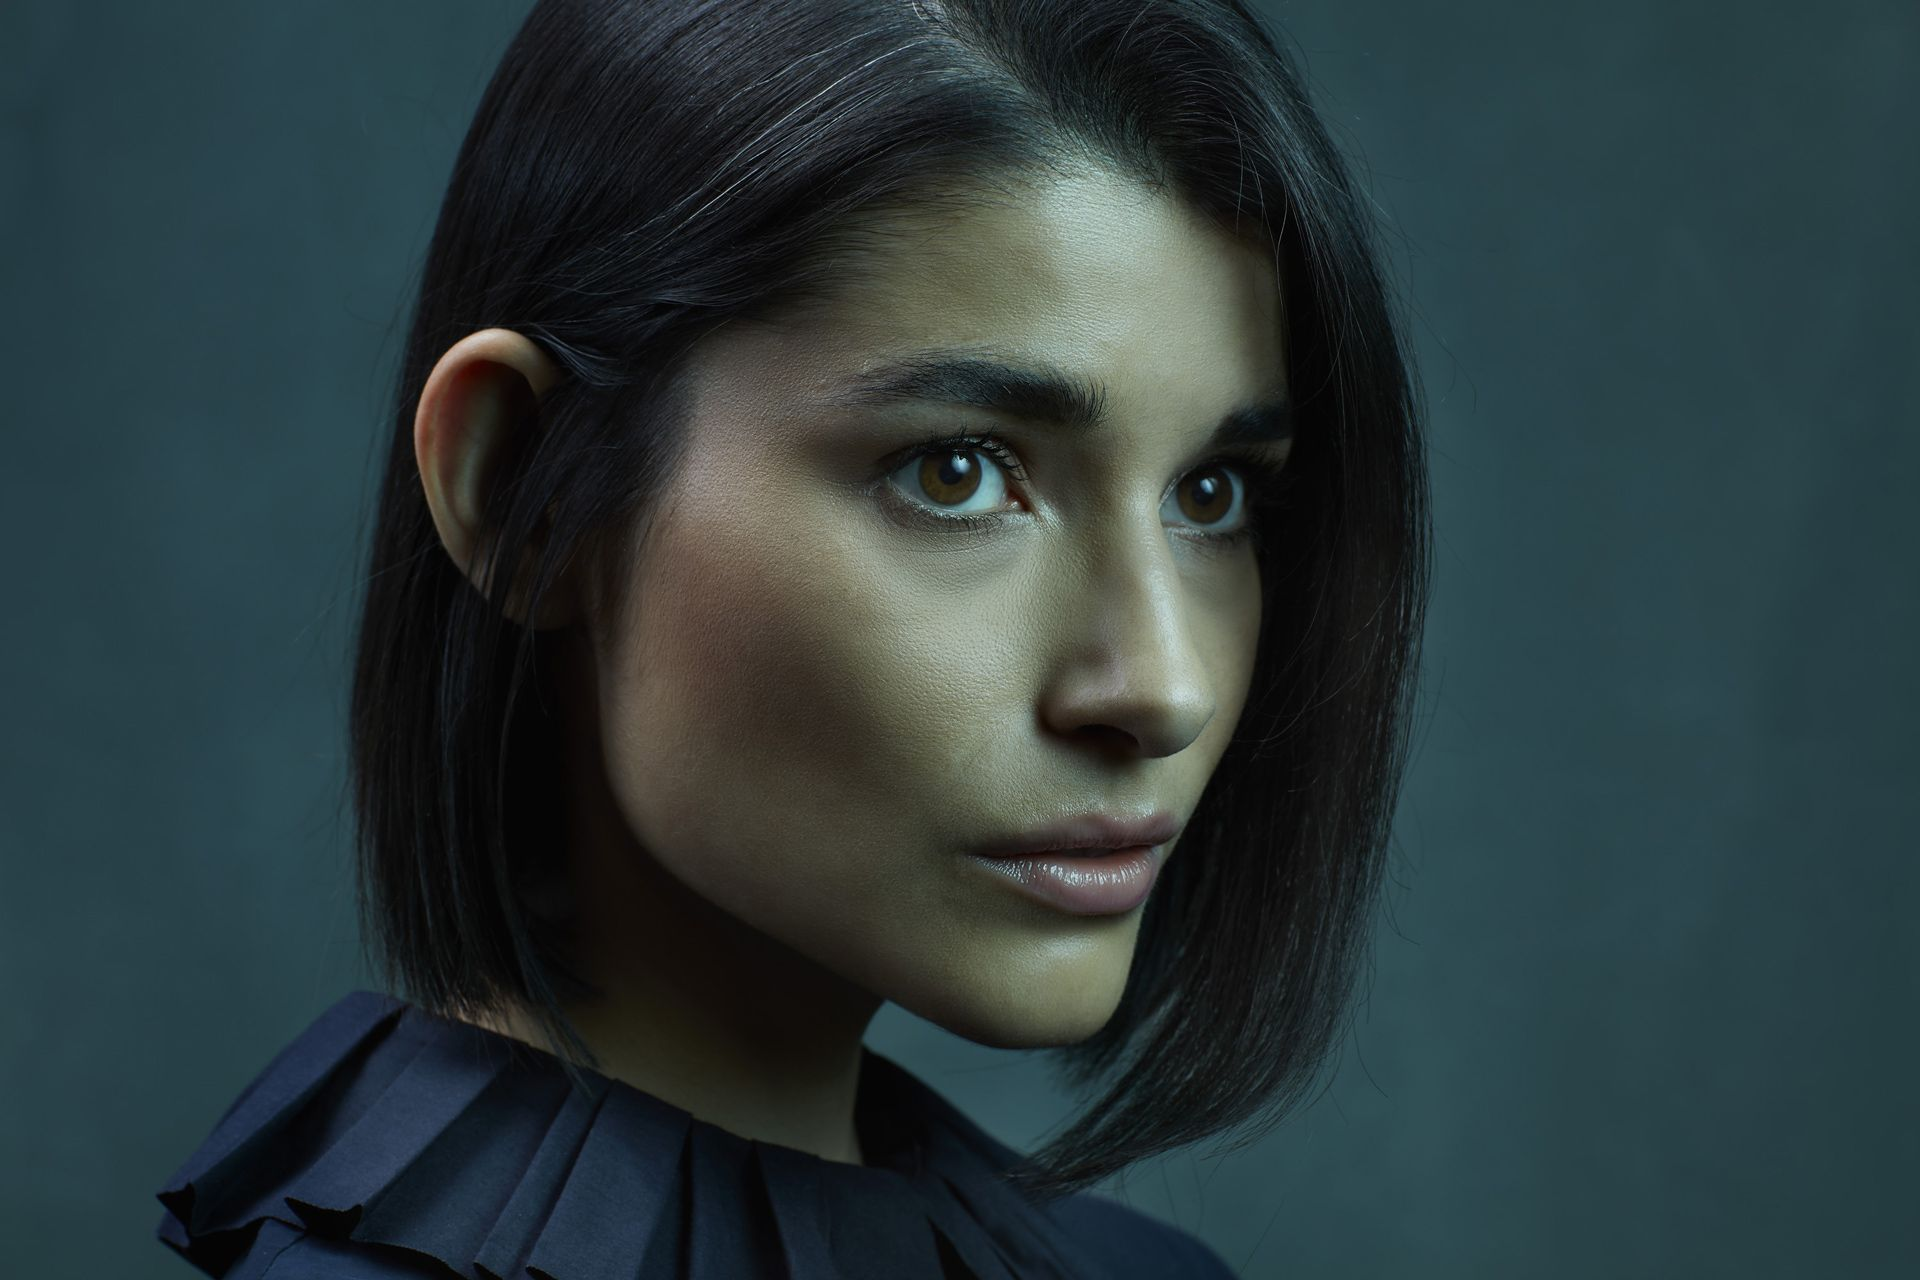 portrait of hispanic woman shoulder length black hair looking pensively away in colored lighting on dark green background by Simon Duhamel for creative project Introspect